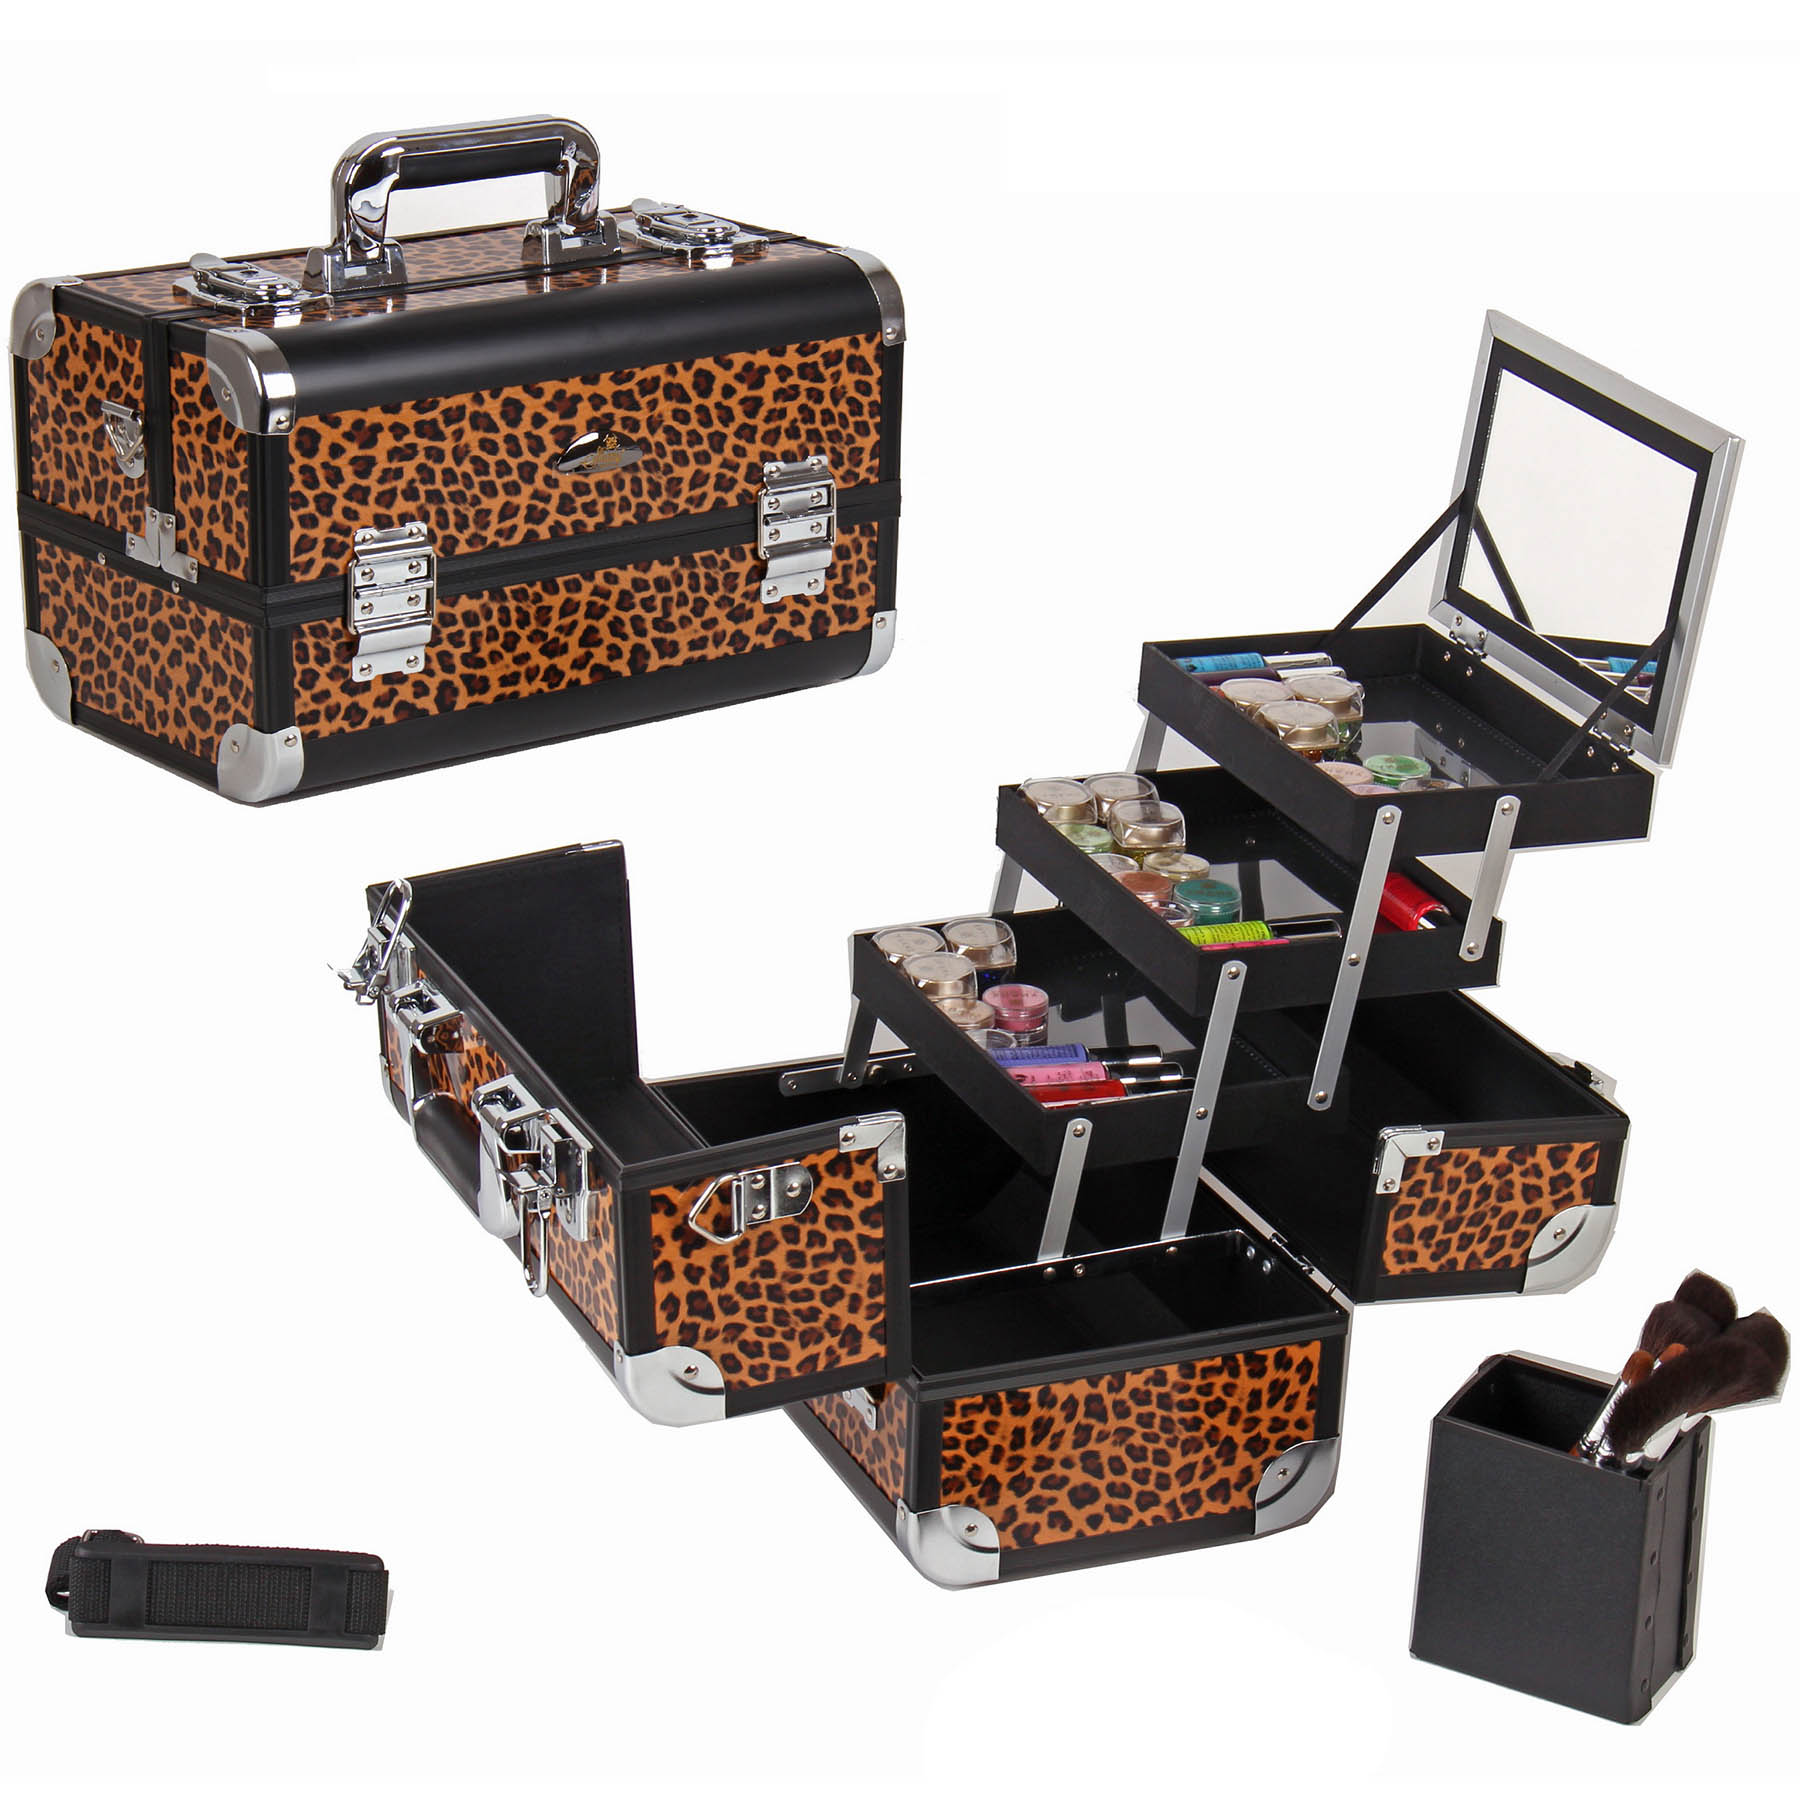 SHANY-Fantasy-Collection-Makeup-Artists-Cosmetics-Train-Case miniature 27